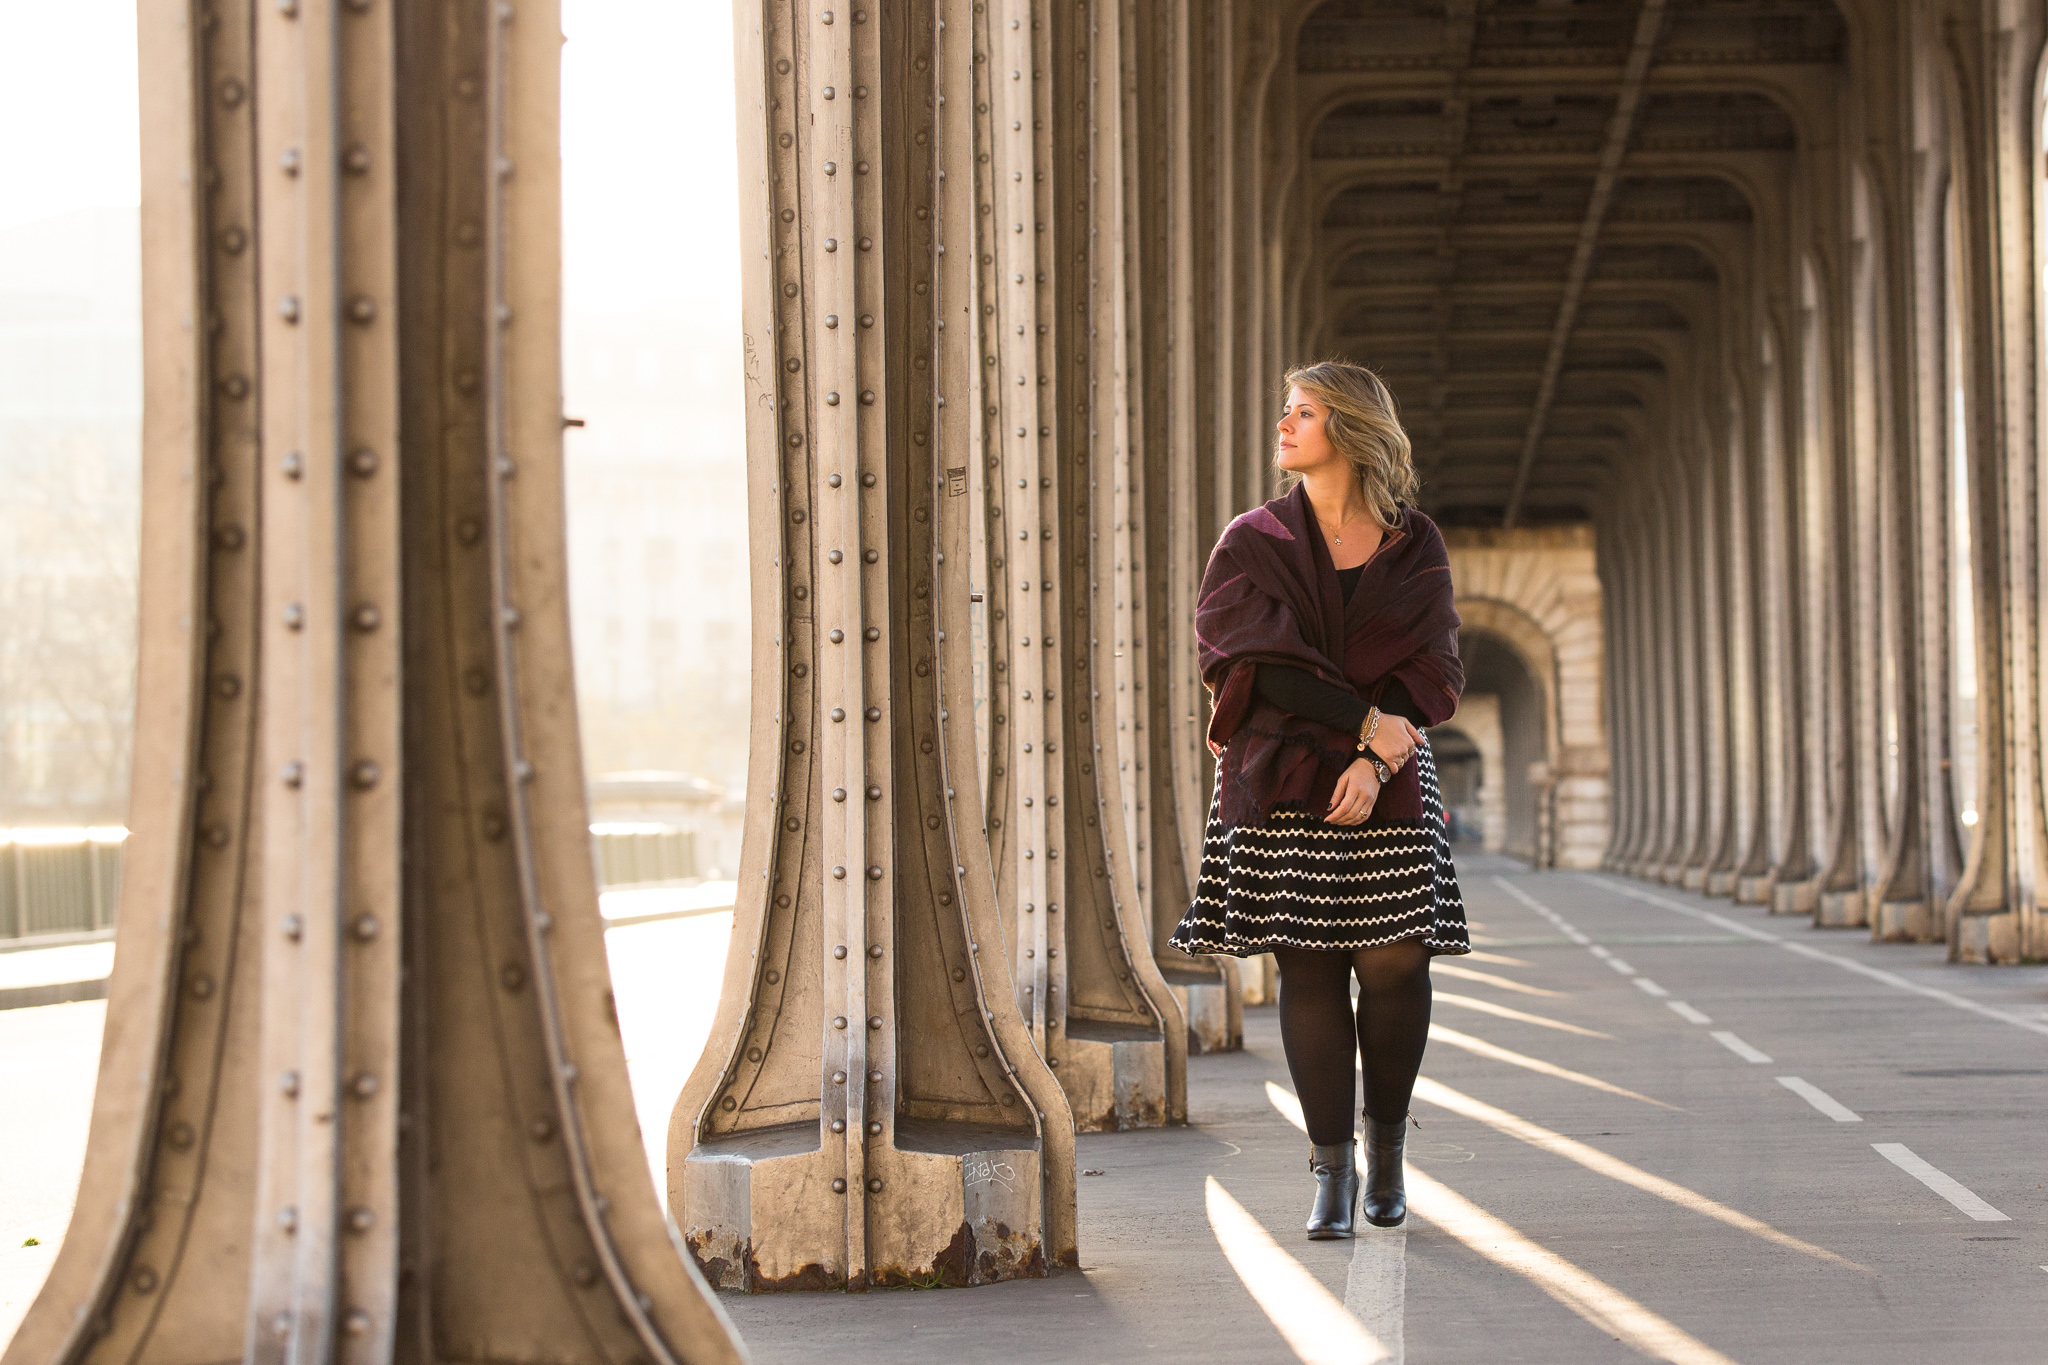 solo traveler exporing the highlights of paris